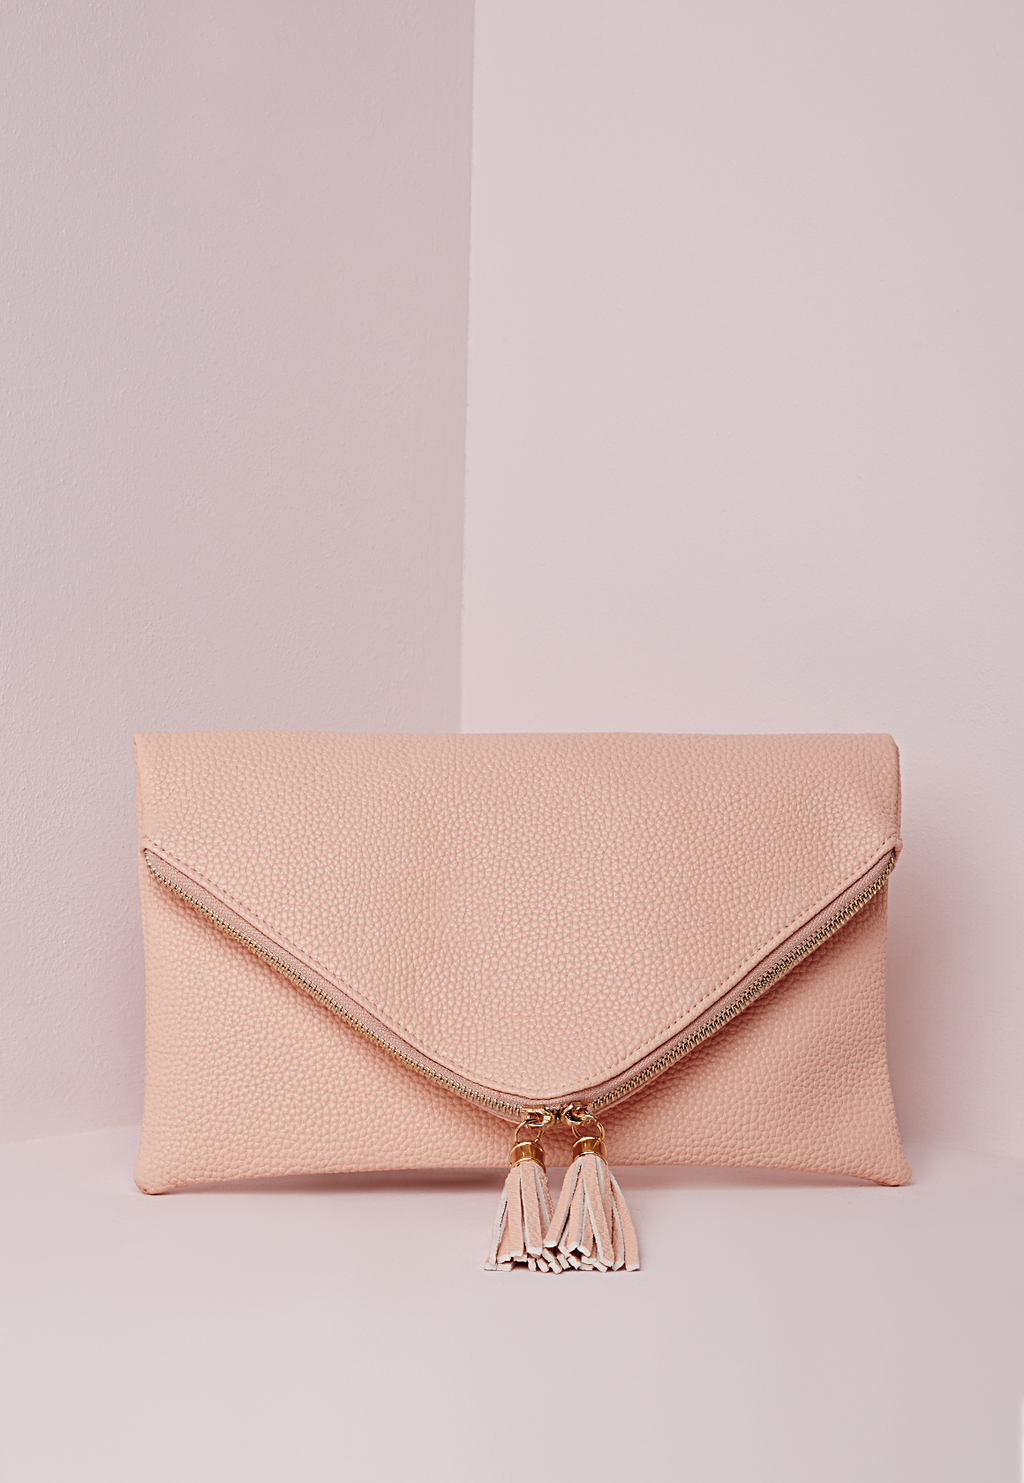 Double Tassel Zipped Envelope Clutch Nude, Beige - predominant colour: nude; occasions: evening; type of pattern: standard; style: clutch; length: hand carry; size: standard; material: faux leather; embellishment: fringing; pattern: plain; finish: plain; season: s/s 2016